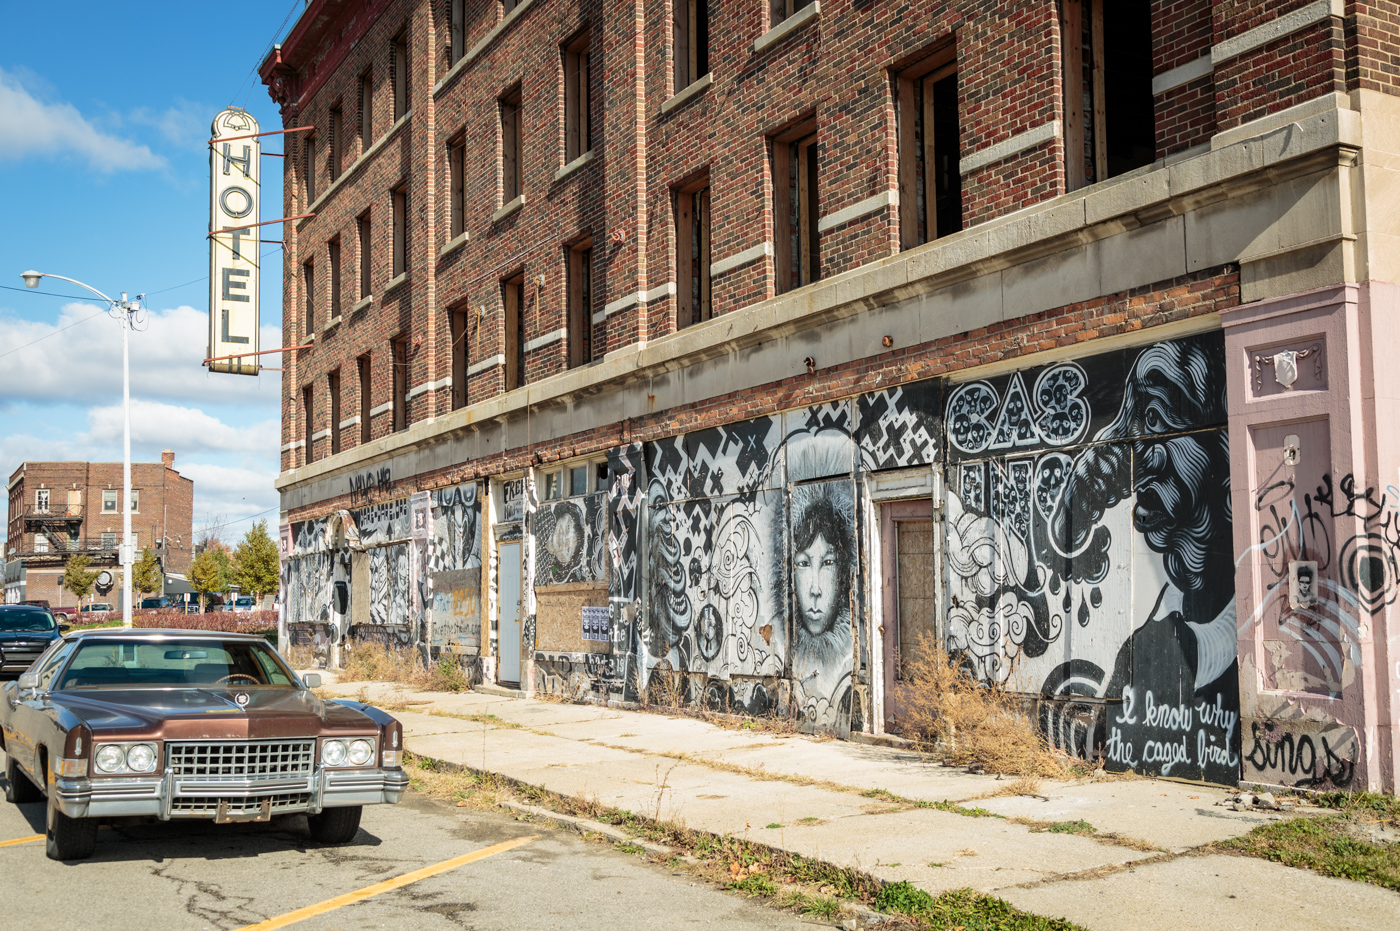 Hotel with graffiti in Detroit